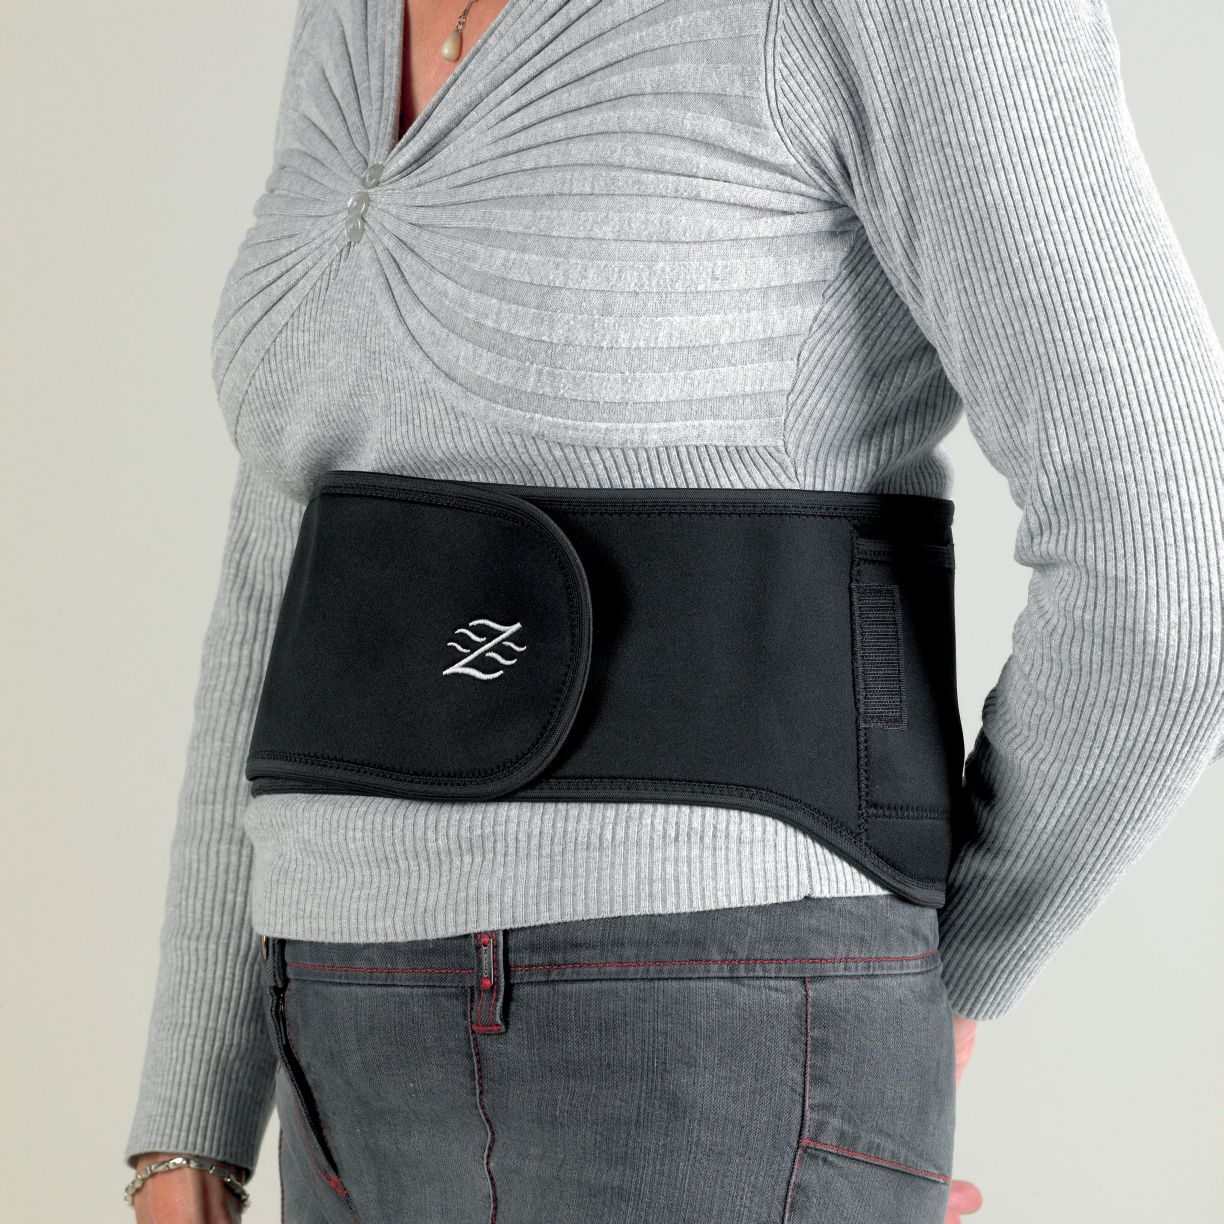 Clothing Blazewear Heated Back Warmer The Mobility Centre